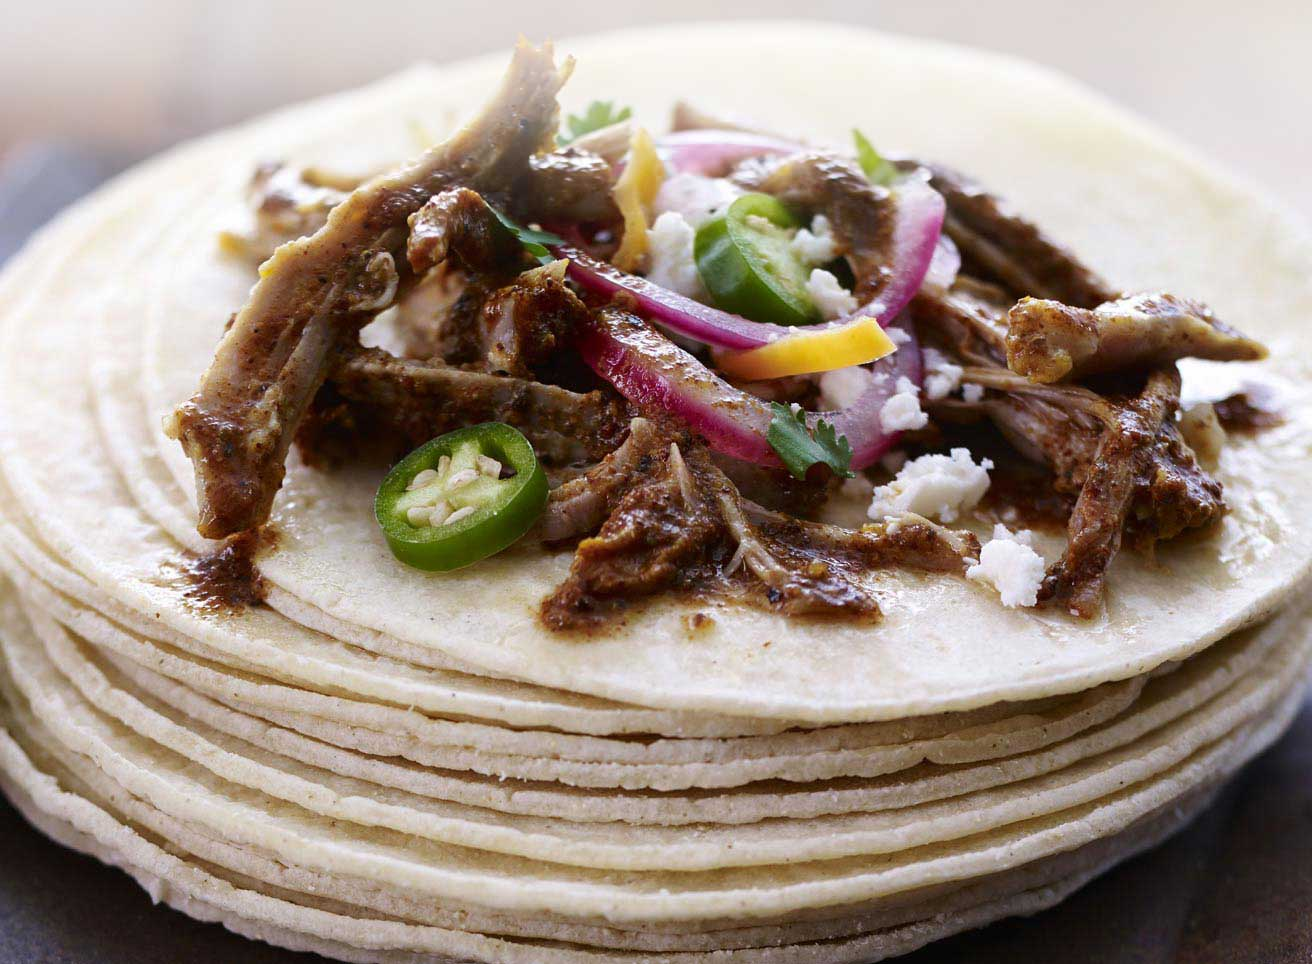 Pork Cochinita Pibil and Caramalized Onion Taco